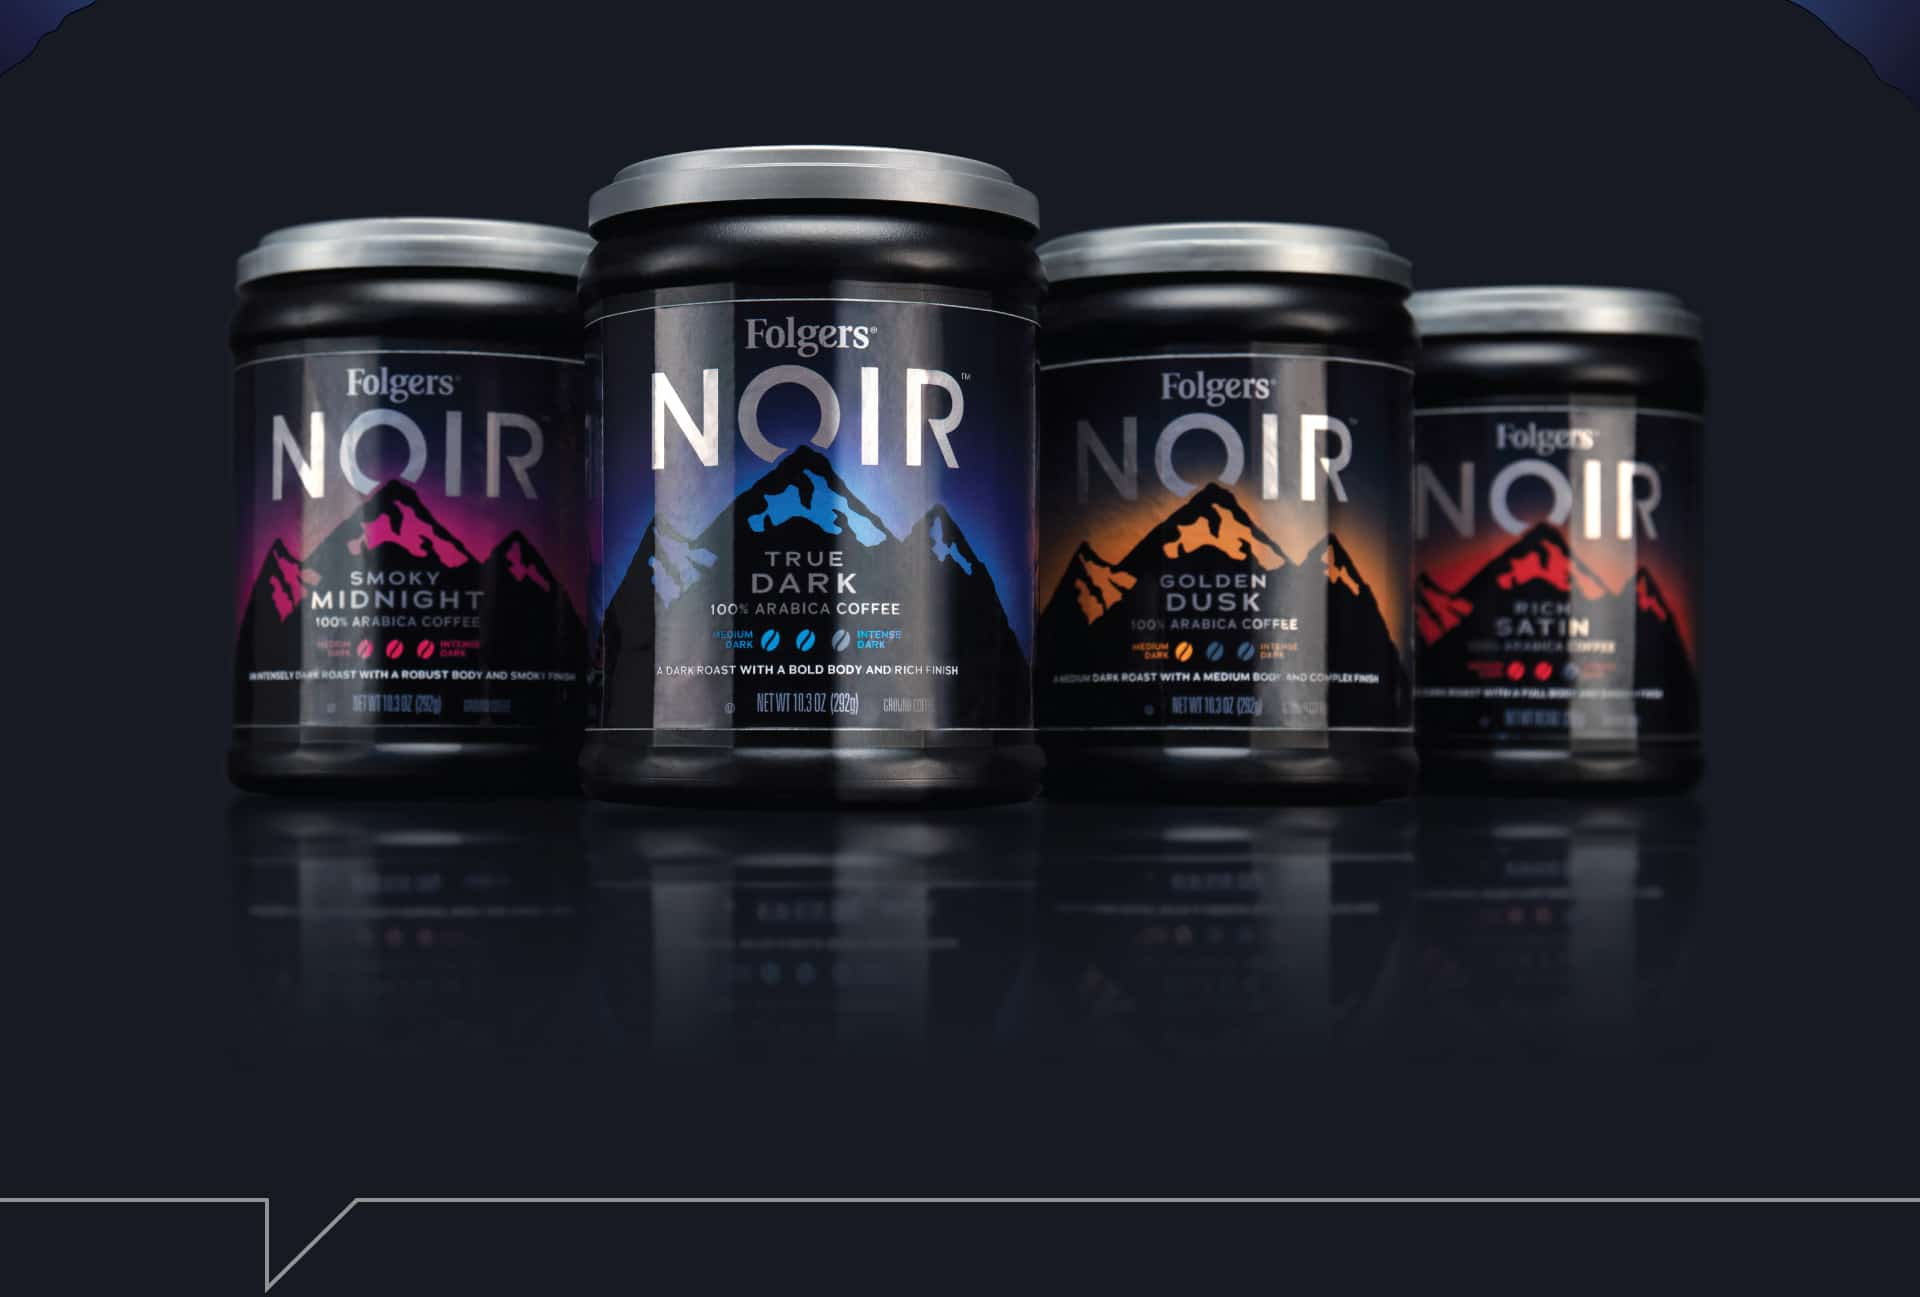 Folgers Noir - Packaging Design